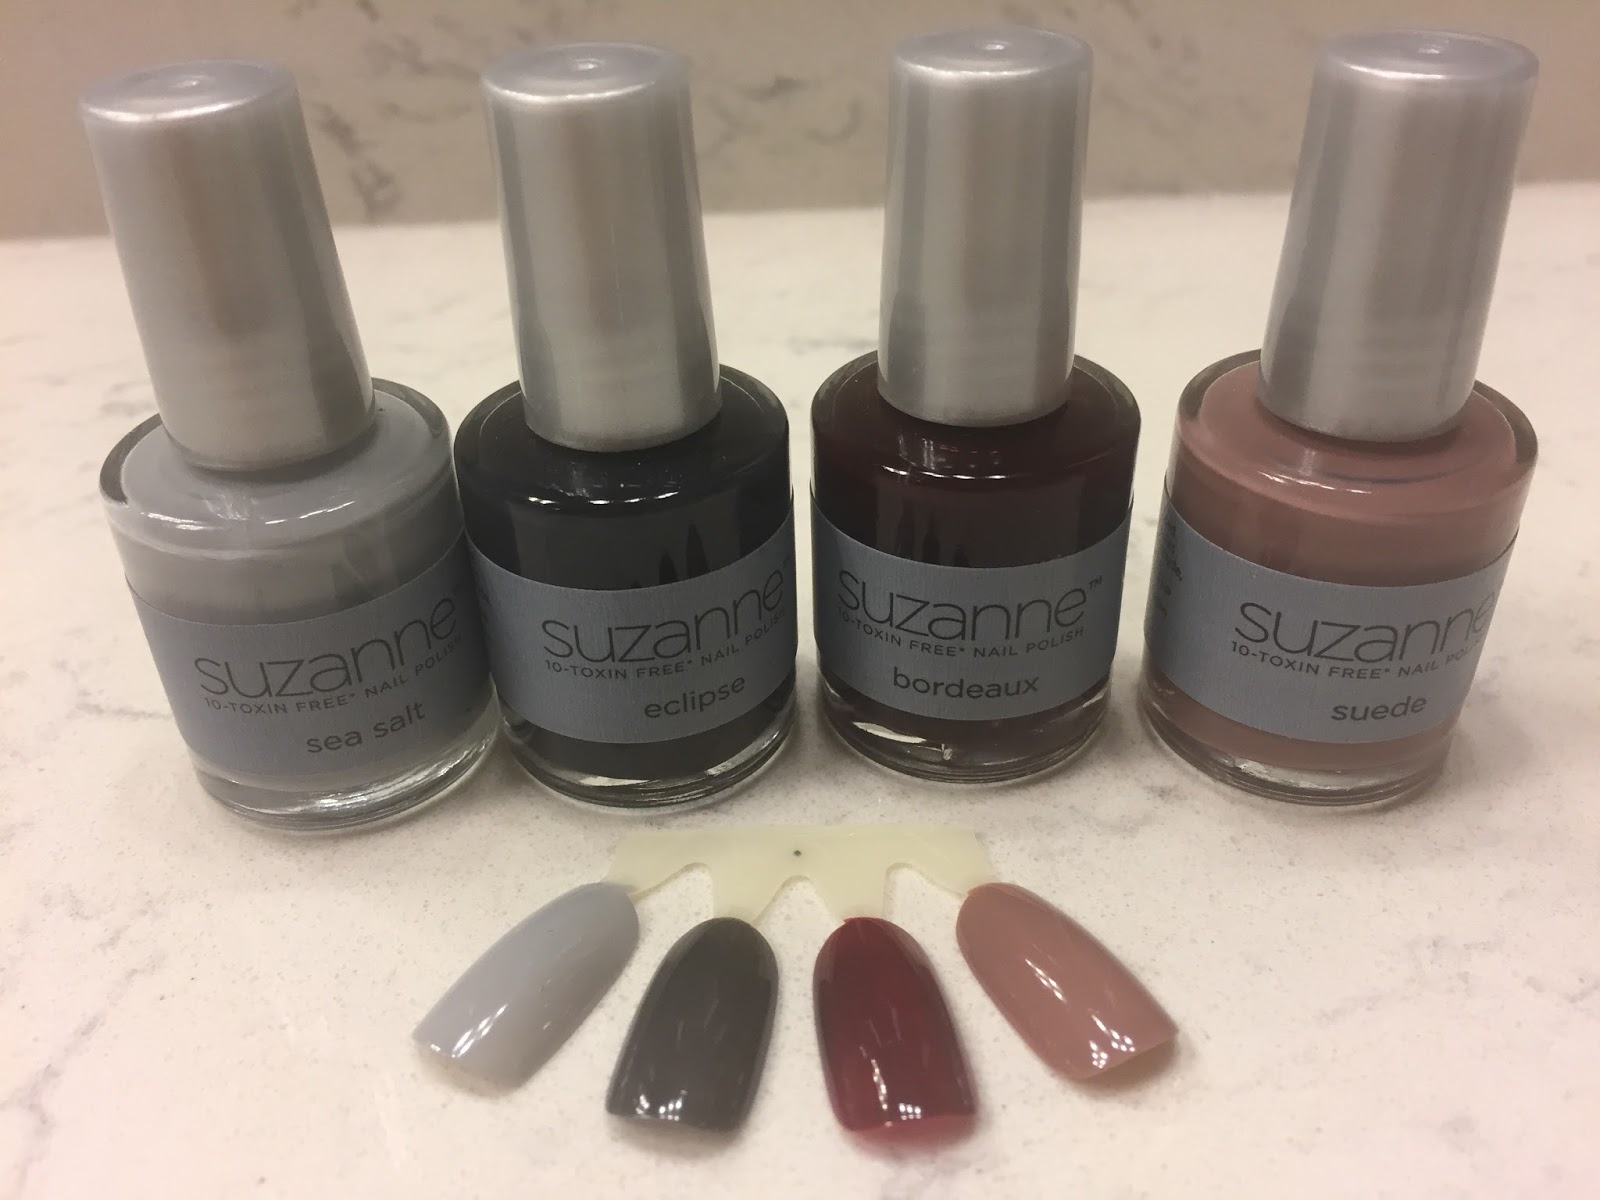 9ac36184881 I am absolutely loving Suede as my nail color and it is the color that I am  reaching for all the time now for my nails. I like Bordeaux on my toes.